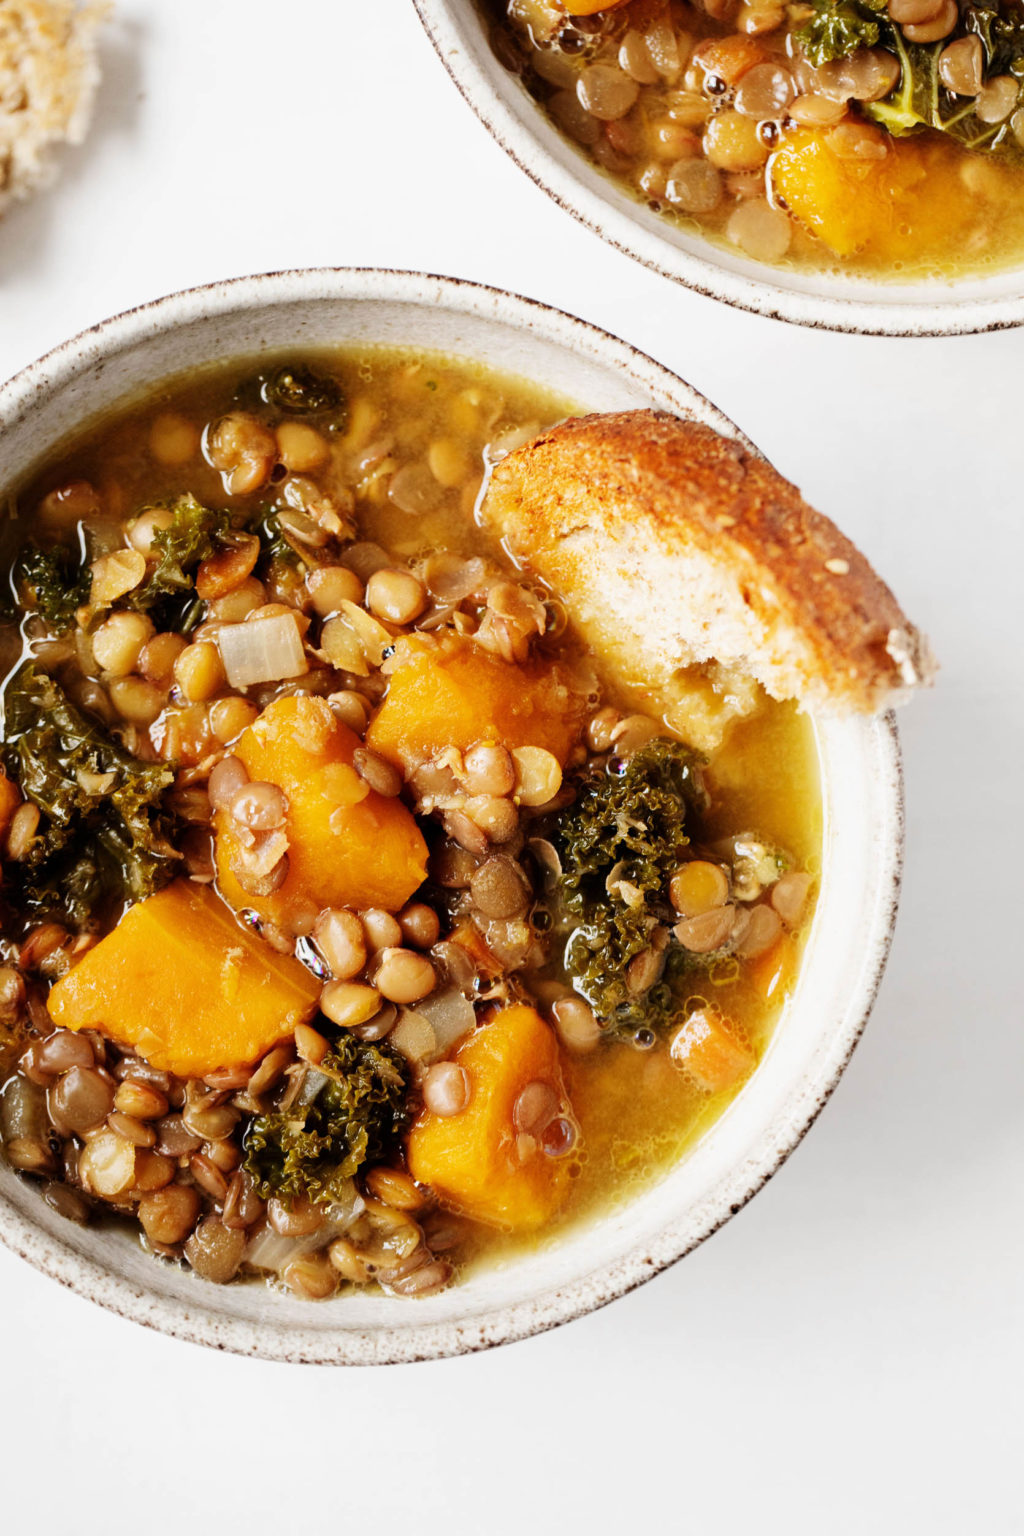 A close up photograph of a hearty vegan legume and vegetable stew, with bread poking out of the round serving bowl.